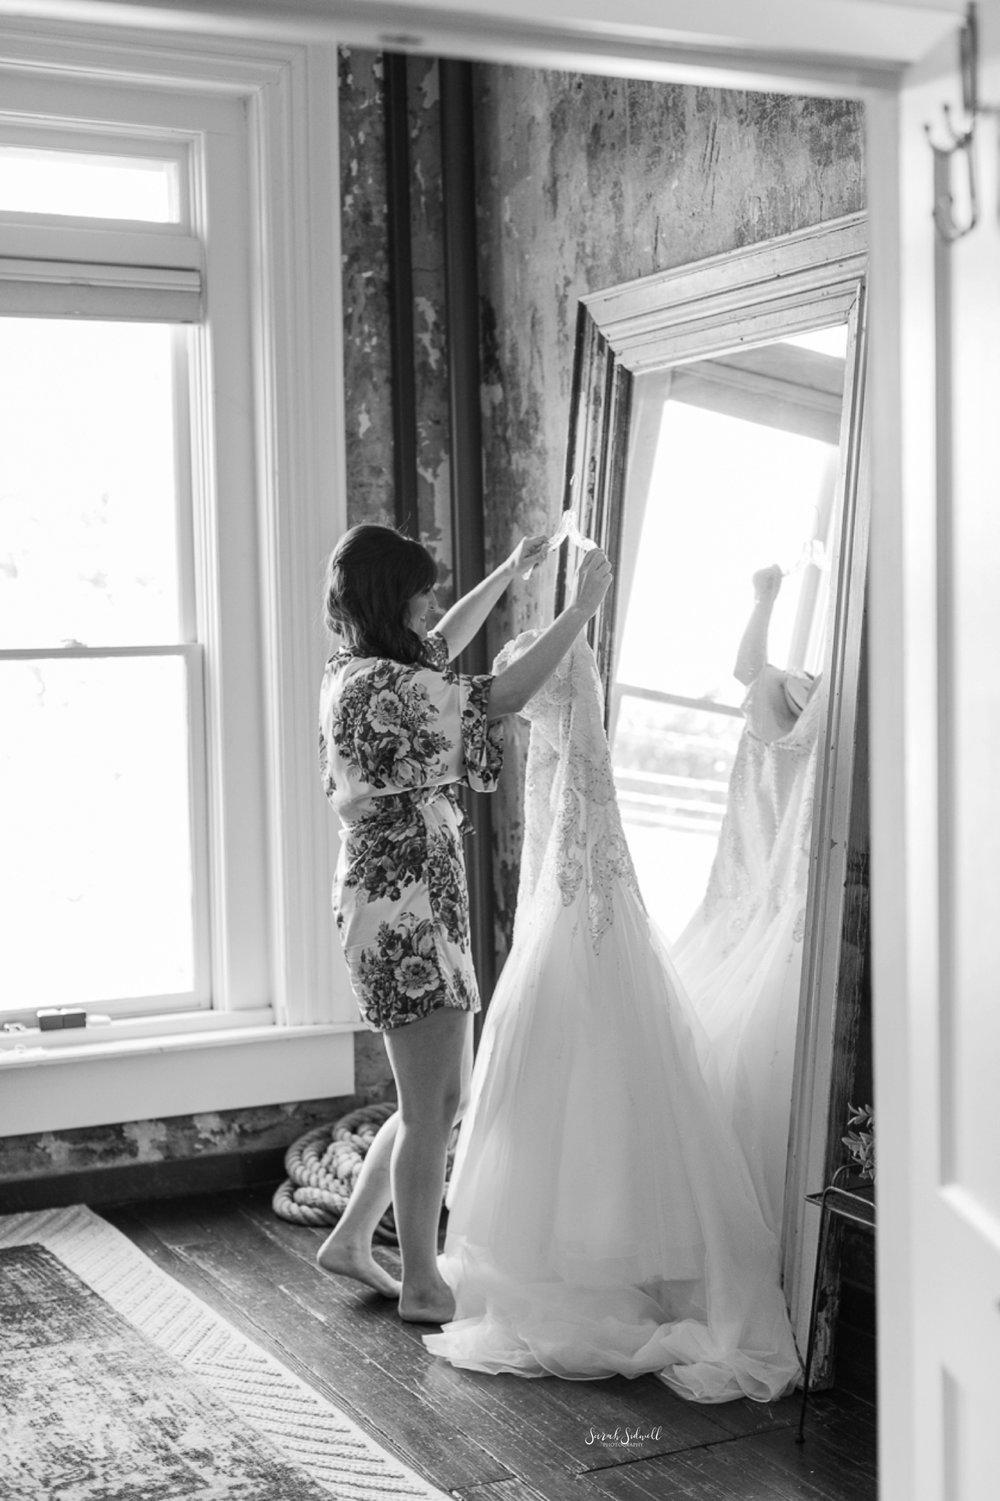 A bridesmaid hangs a bride's wedding dress up in a doorway.